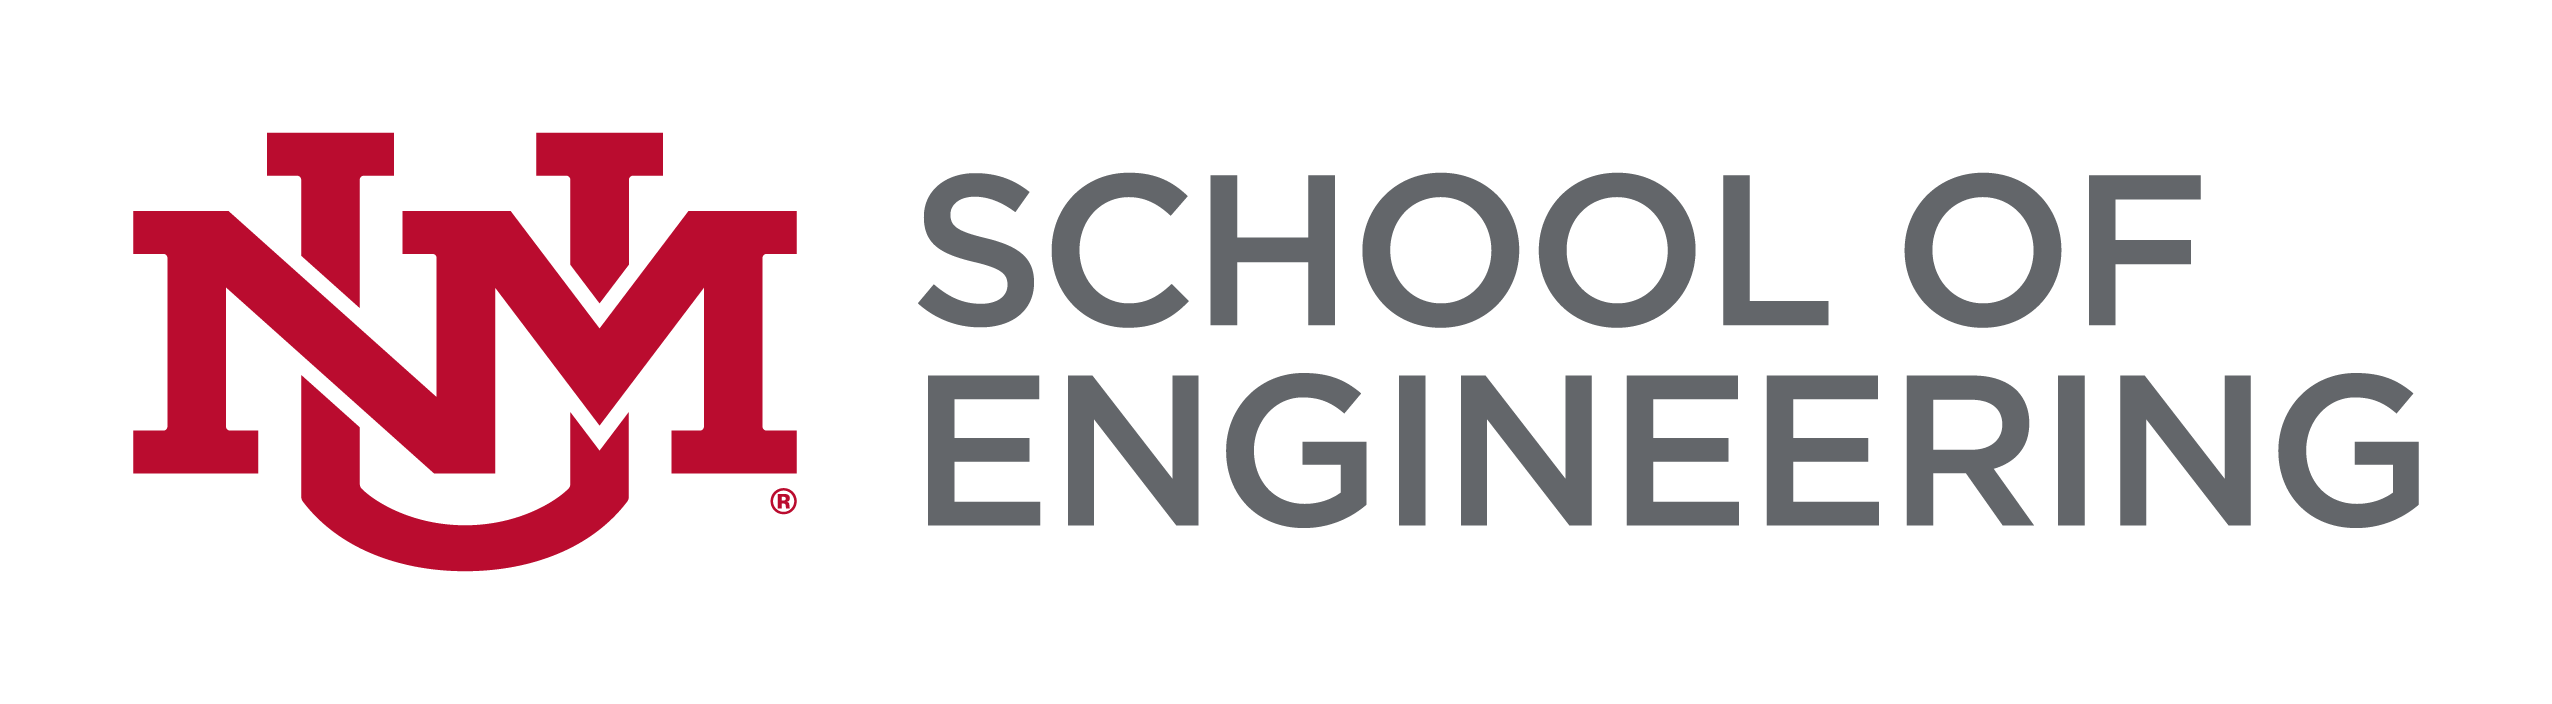 School of Engineering | The University of New Mexico